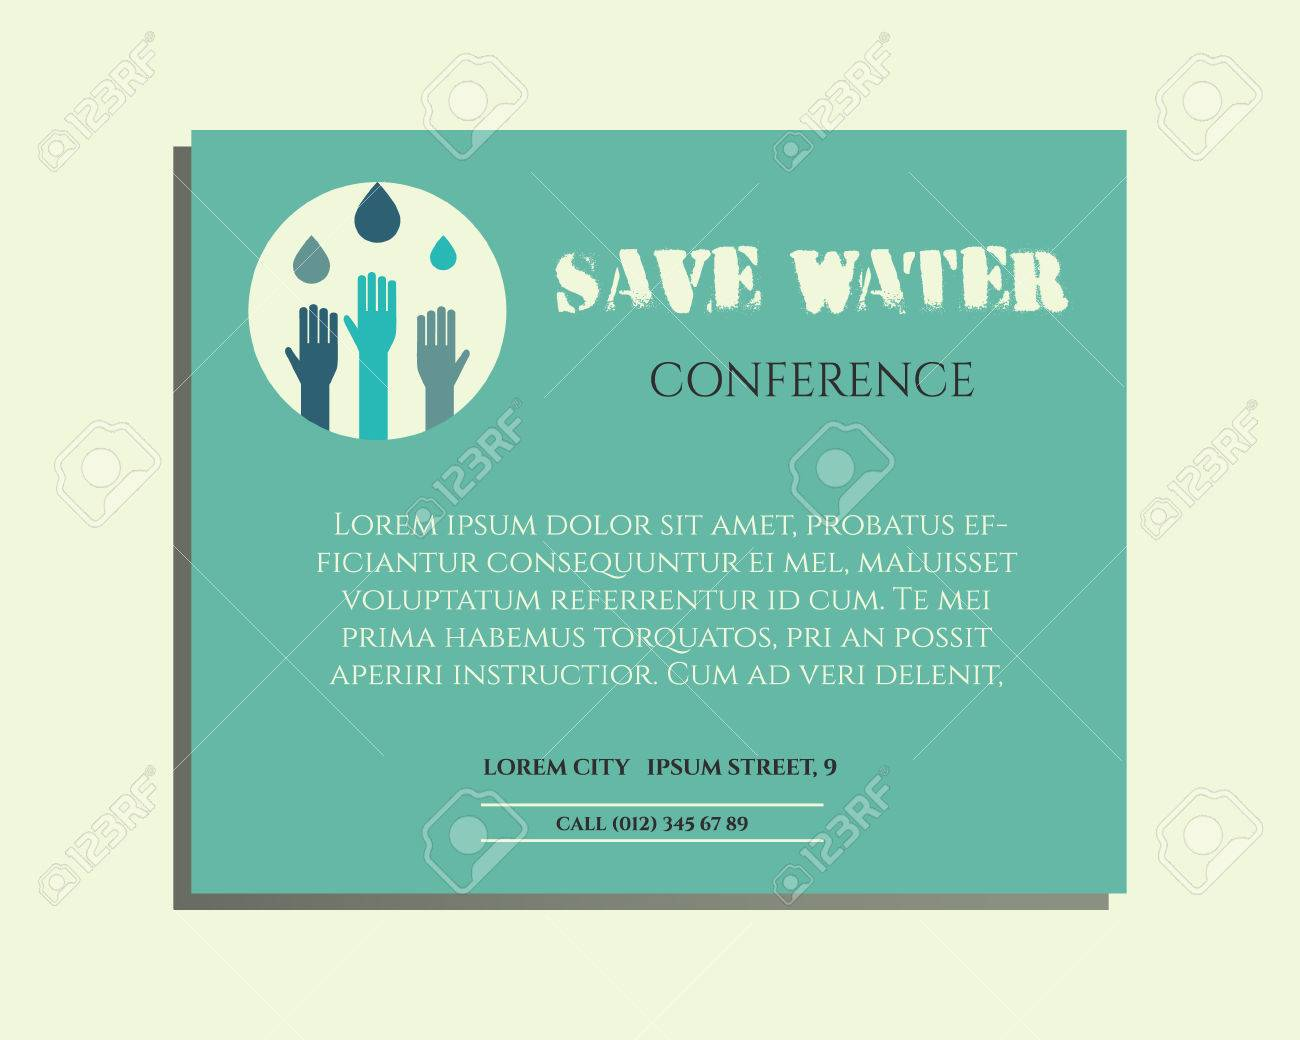 Save Water Conference Poster Invitation Template With Drops And